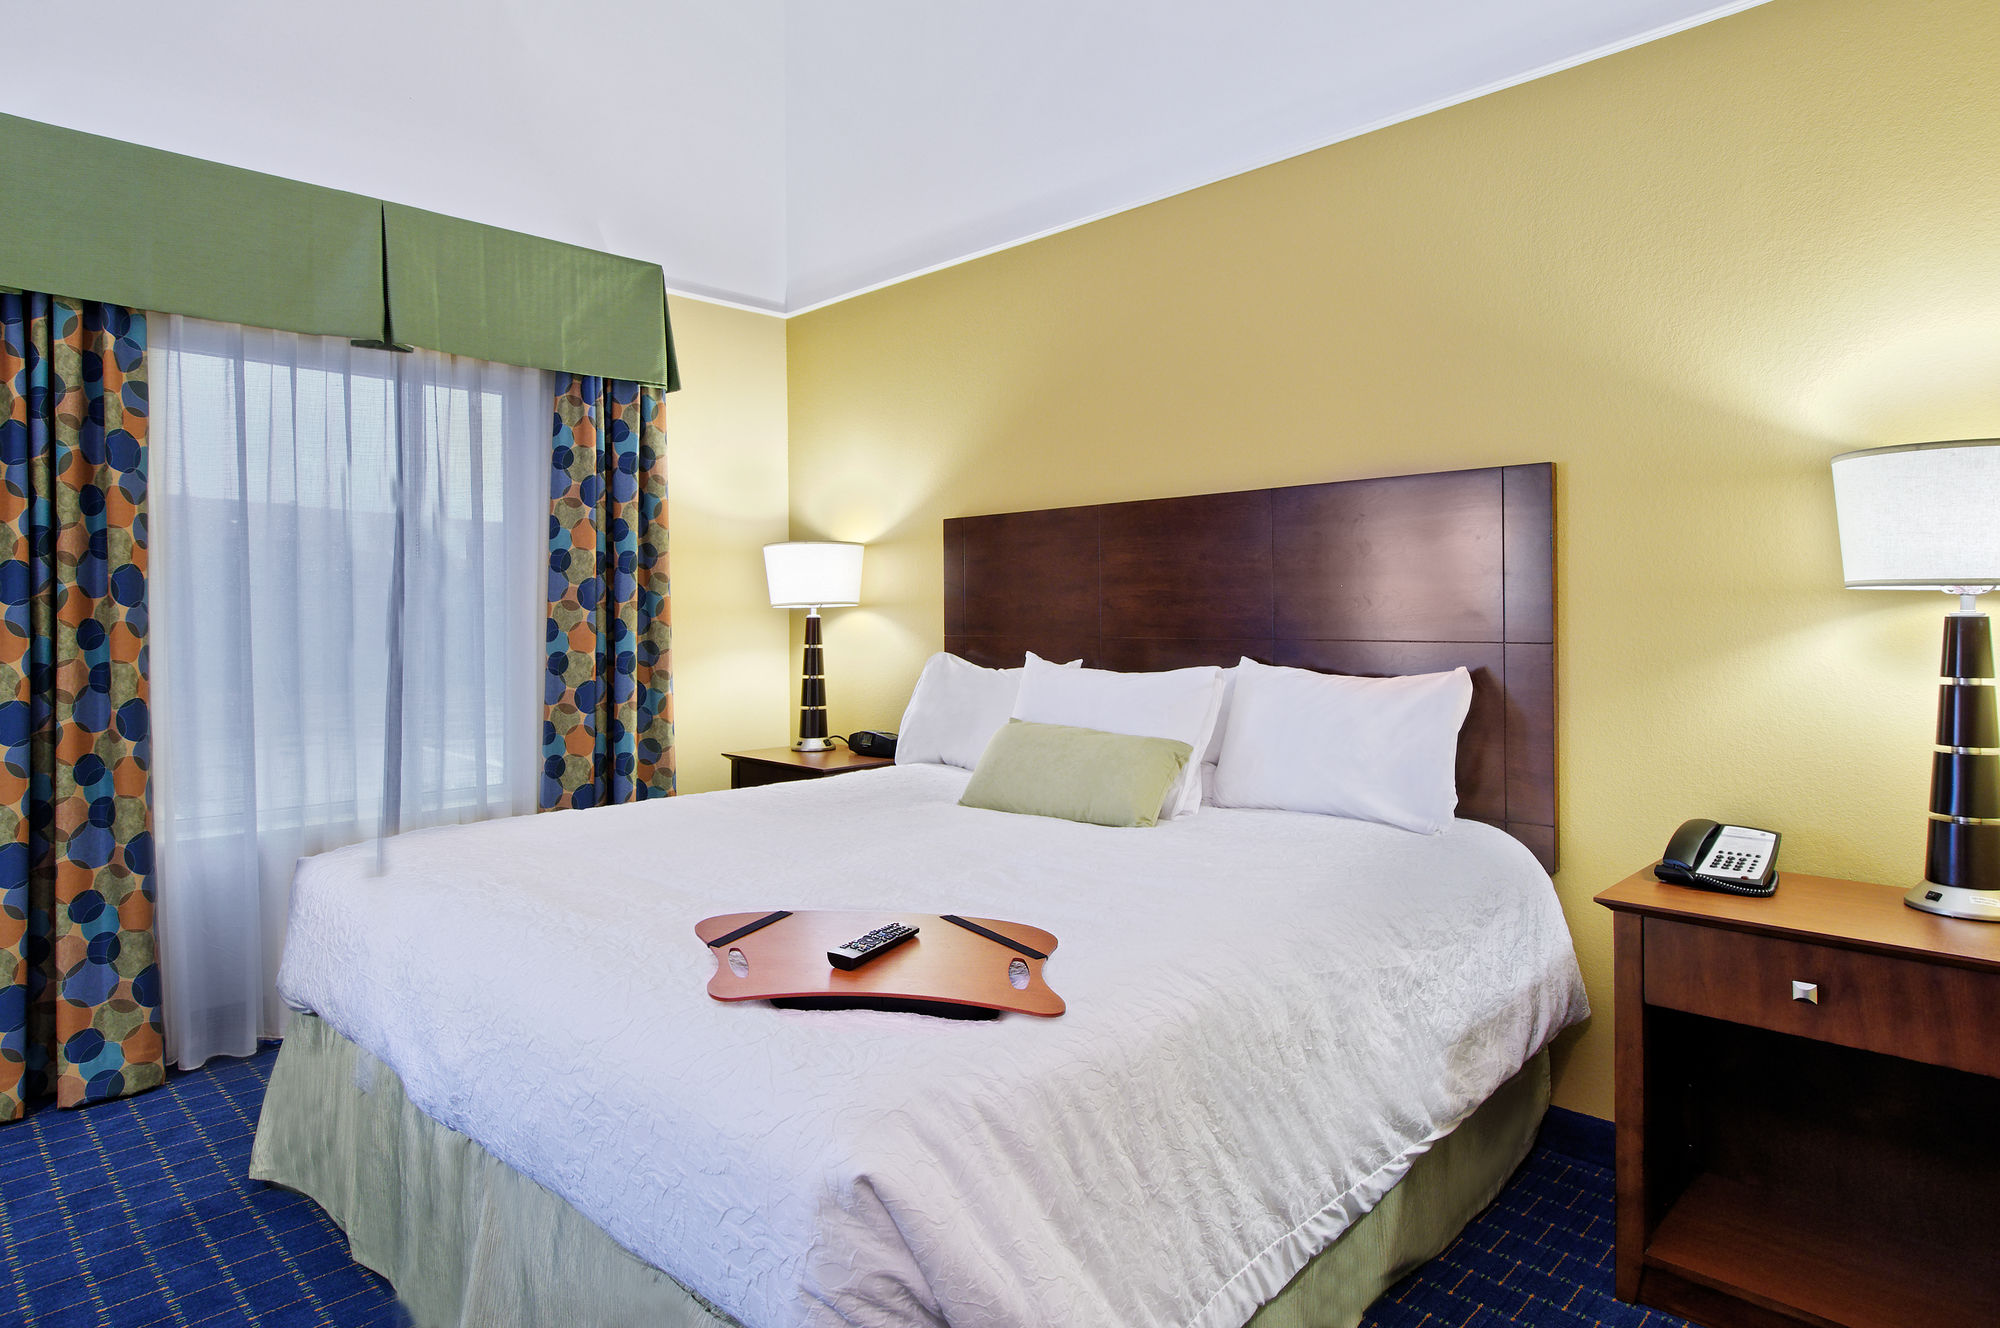 Hampton Inn and Suites Knoxville -Turkey Creek/Farragut in Knoxville, TN